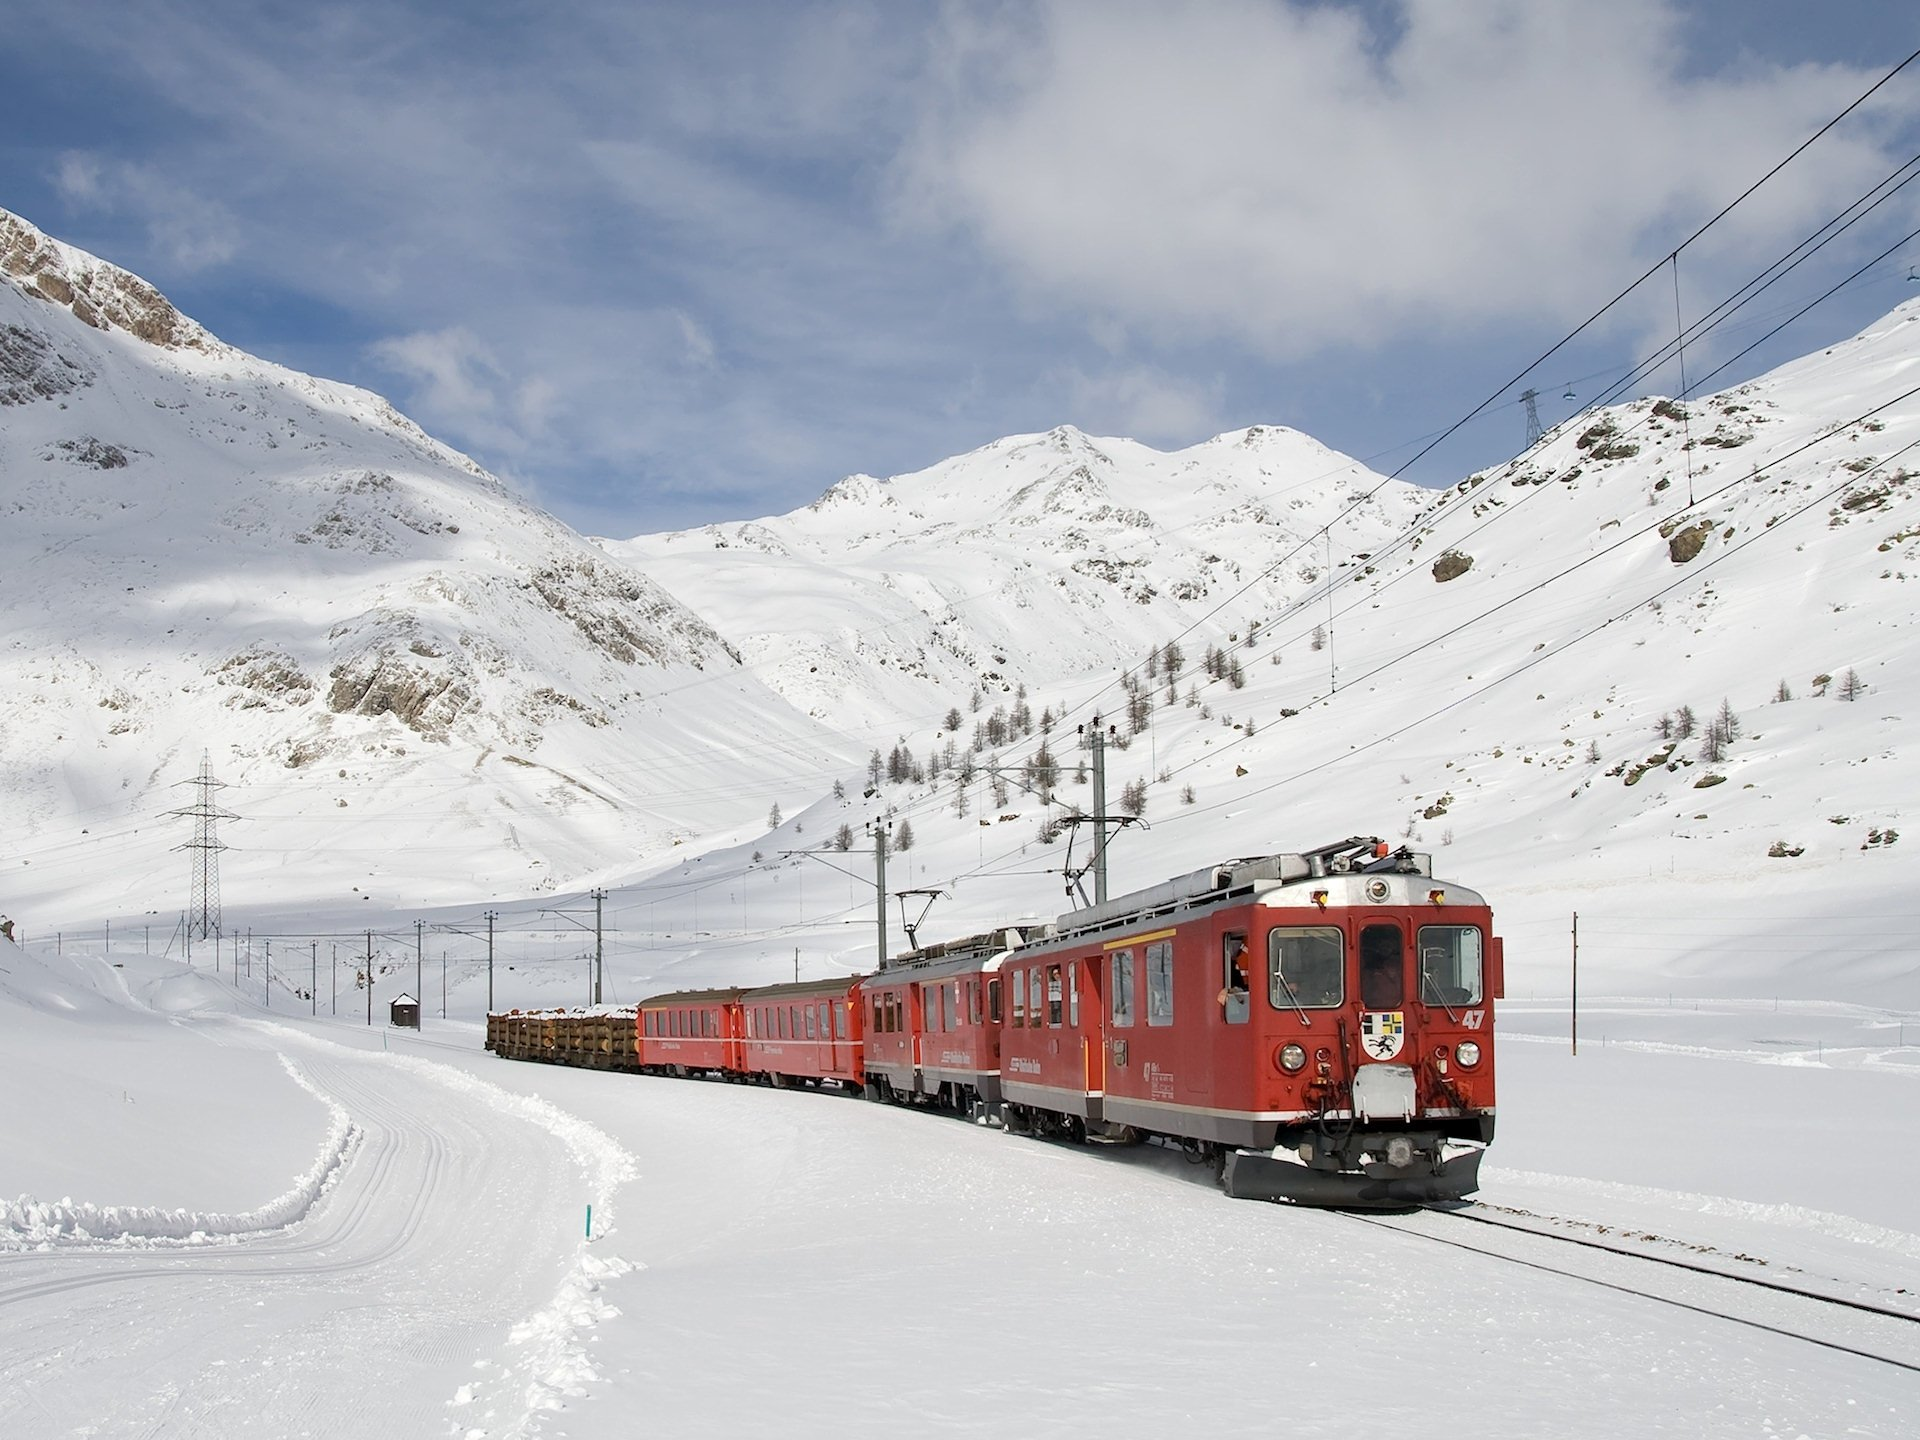 Vehicles - Train  Electric Train Mountain Vehicle Snow Winter Wallpaper